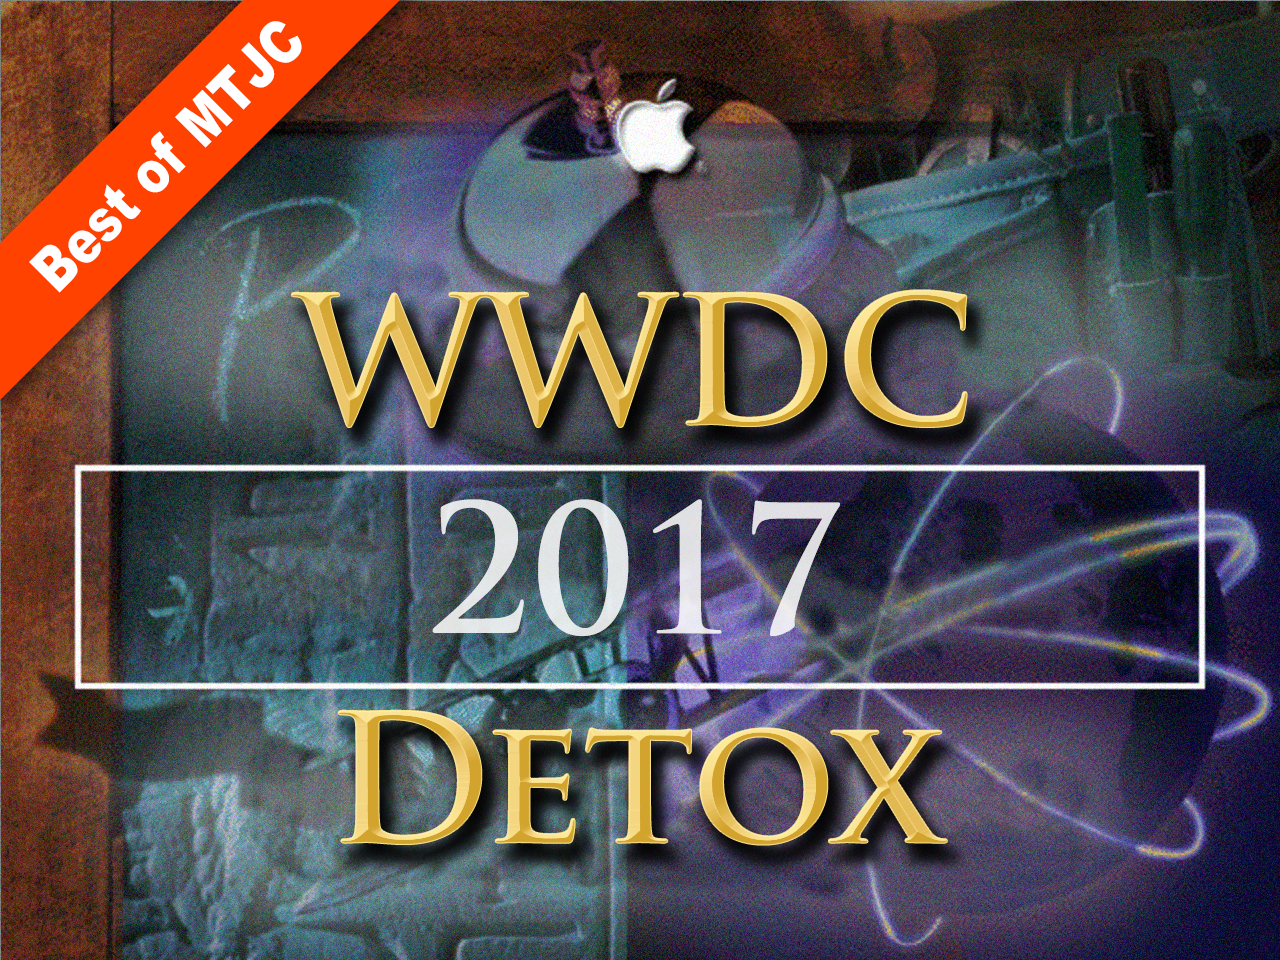 Episode 176 - Best of MTJC: WWDC Detox - 2017 Edition